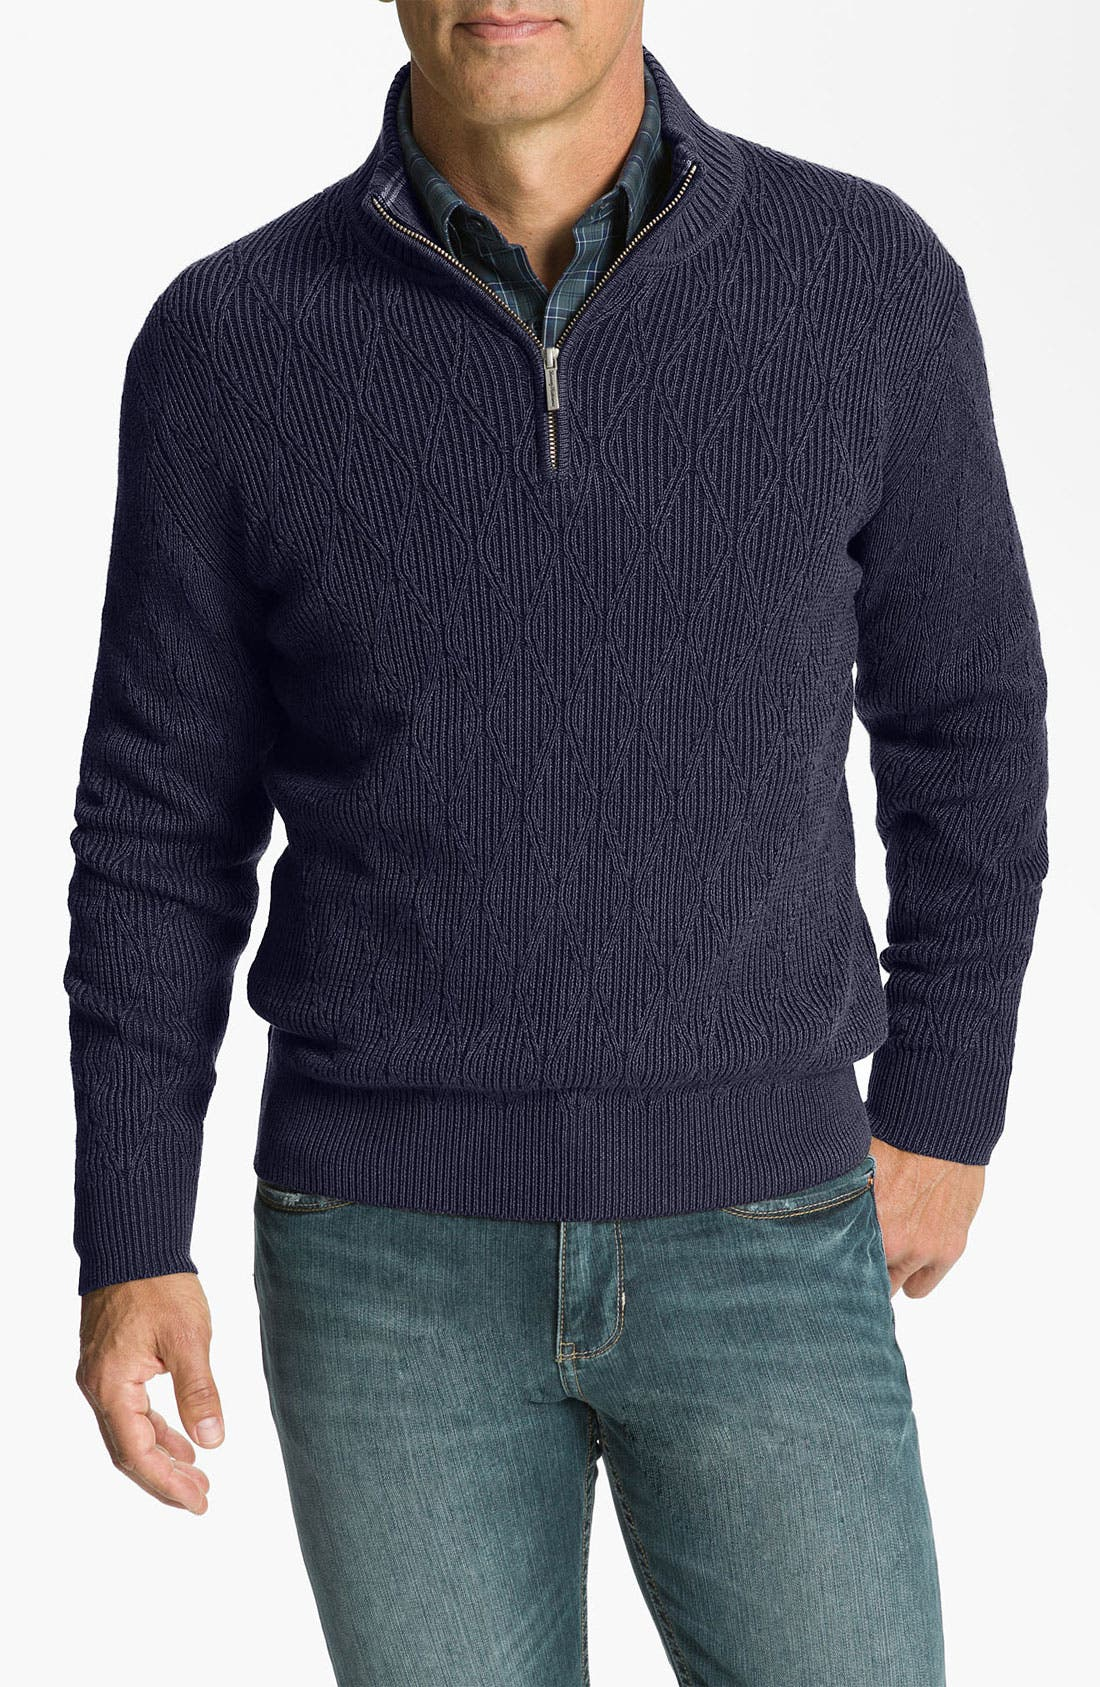 Alternate Image 1 Selected - Tommy Bahama 'Coastal Fairway' Half Zip Sweater